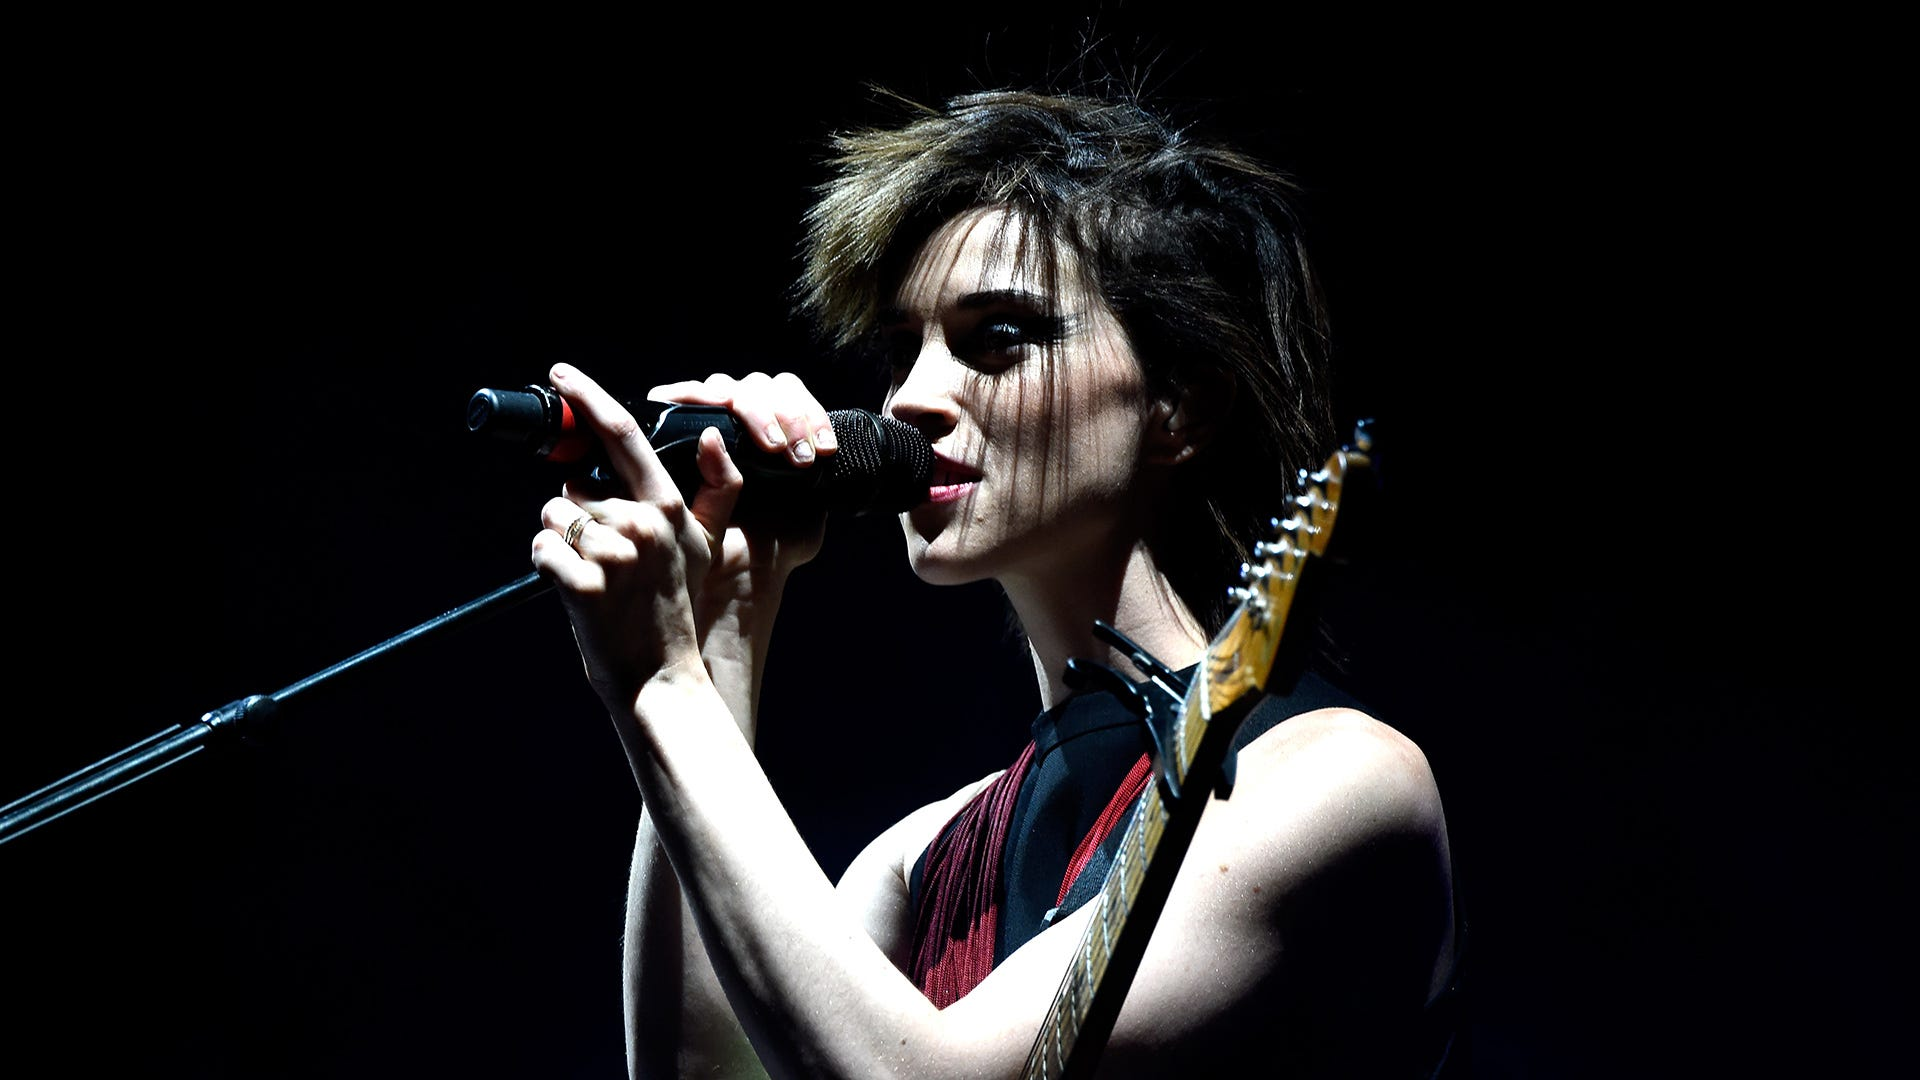 New Arrivals: St. Vincent on the TOOL record she almost made, and lunching with legend David Byrne